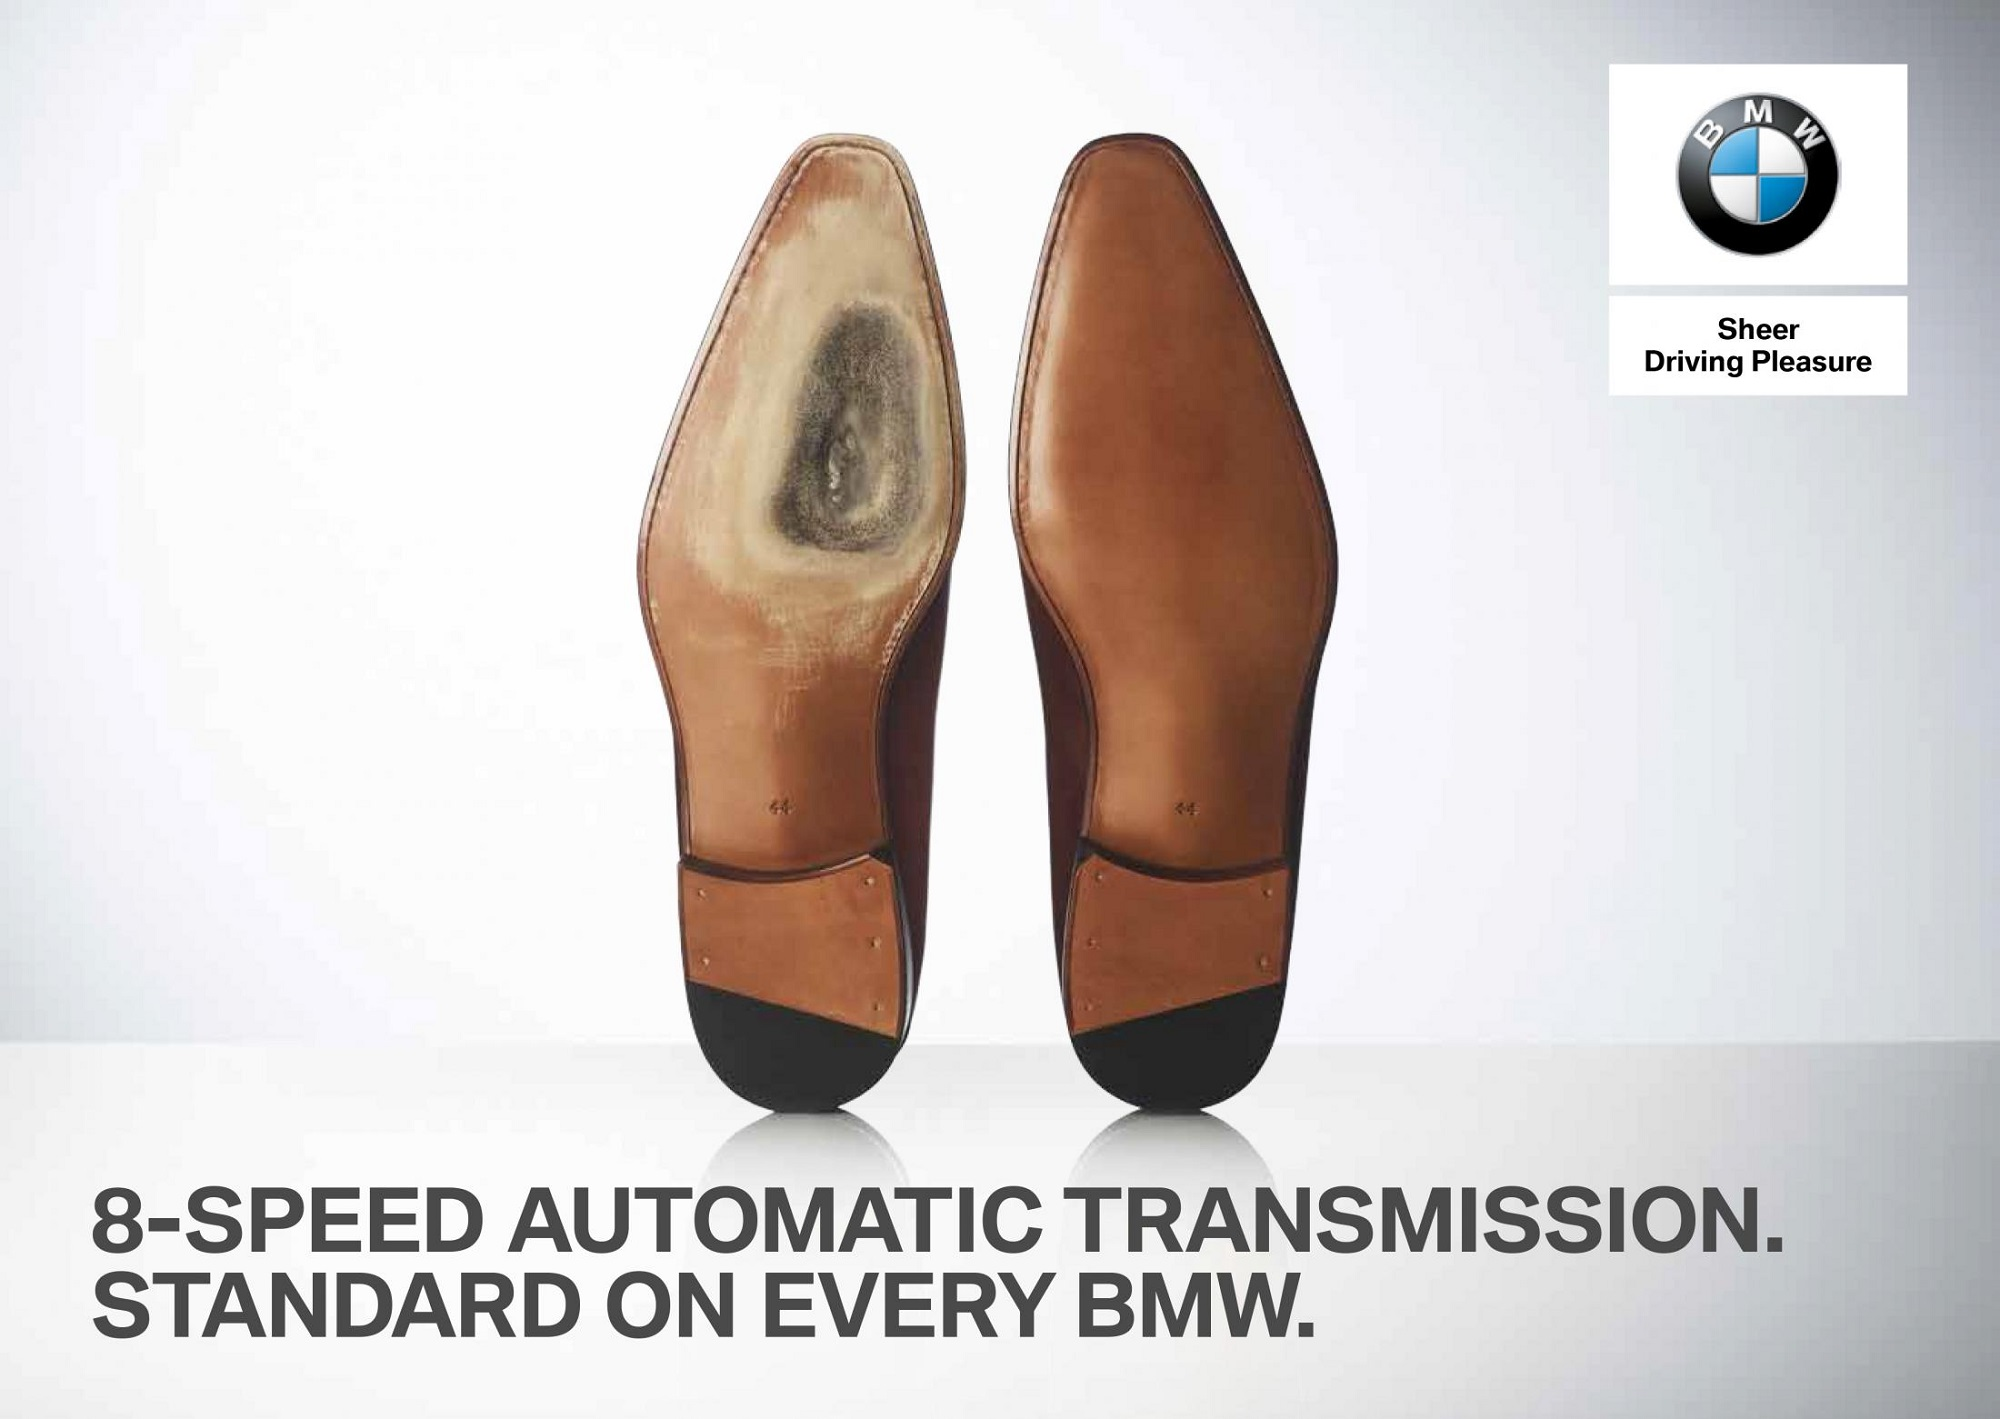 BMW: Shoes - adsofbrands.net